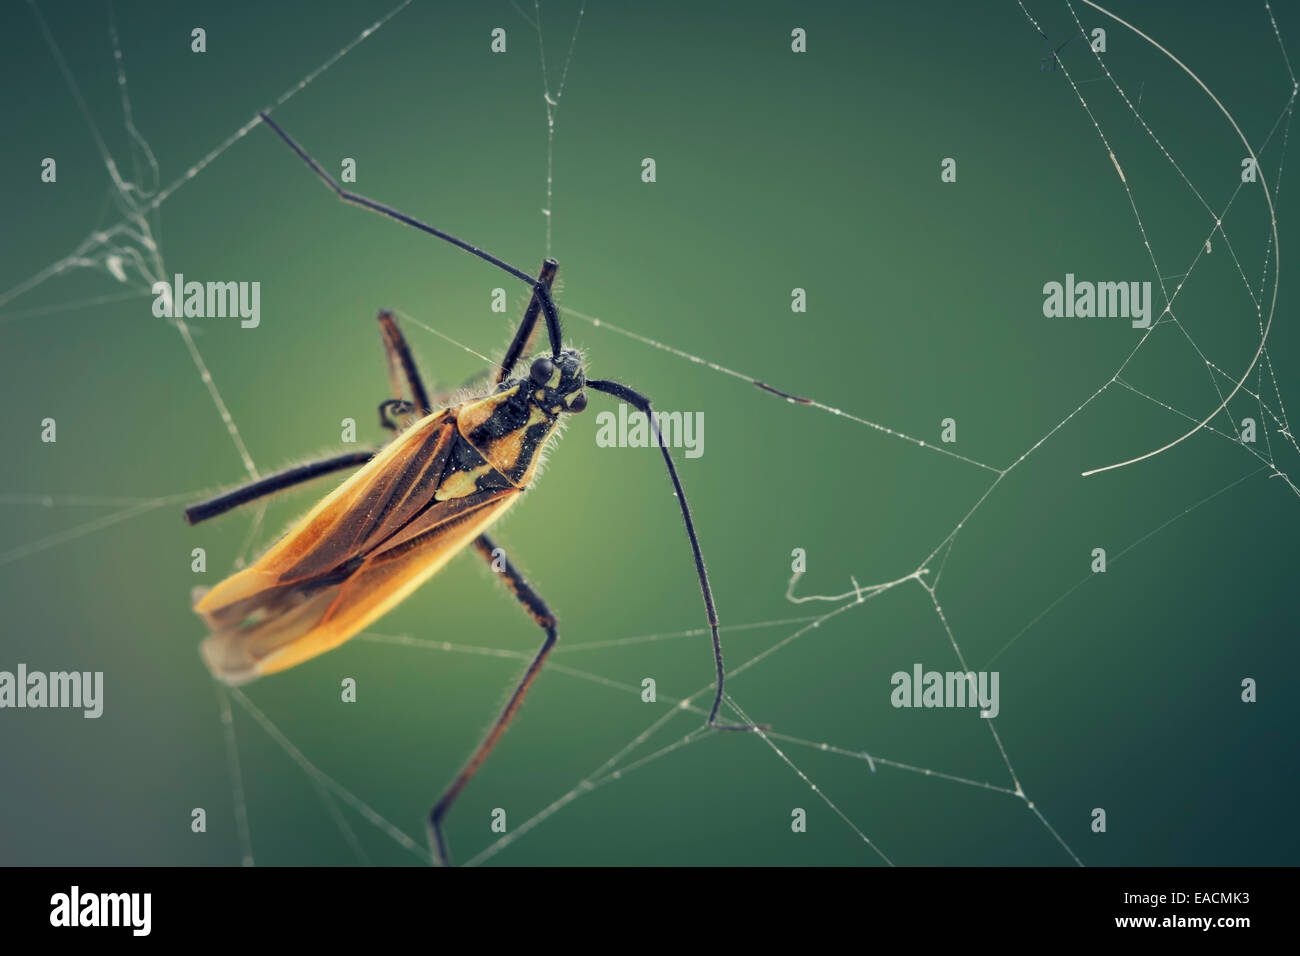 insect on cobweb - Stock Image